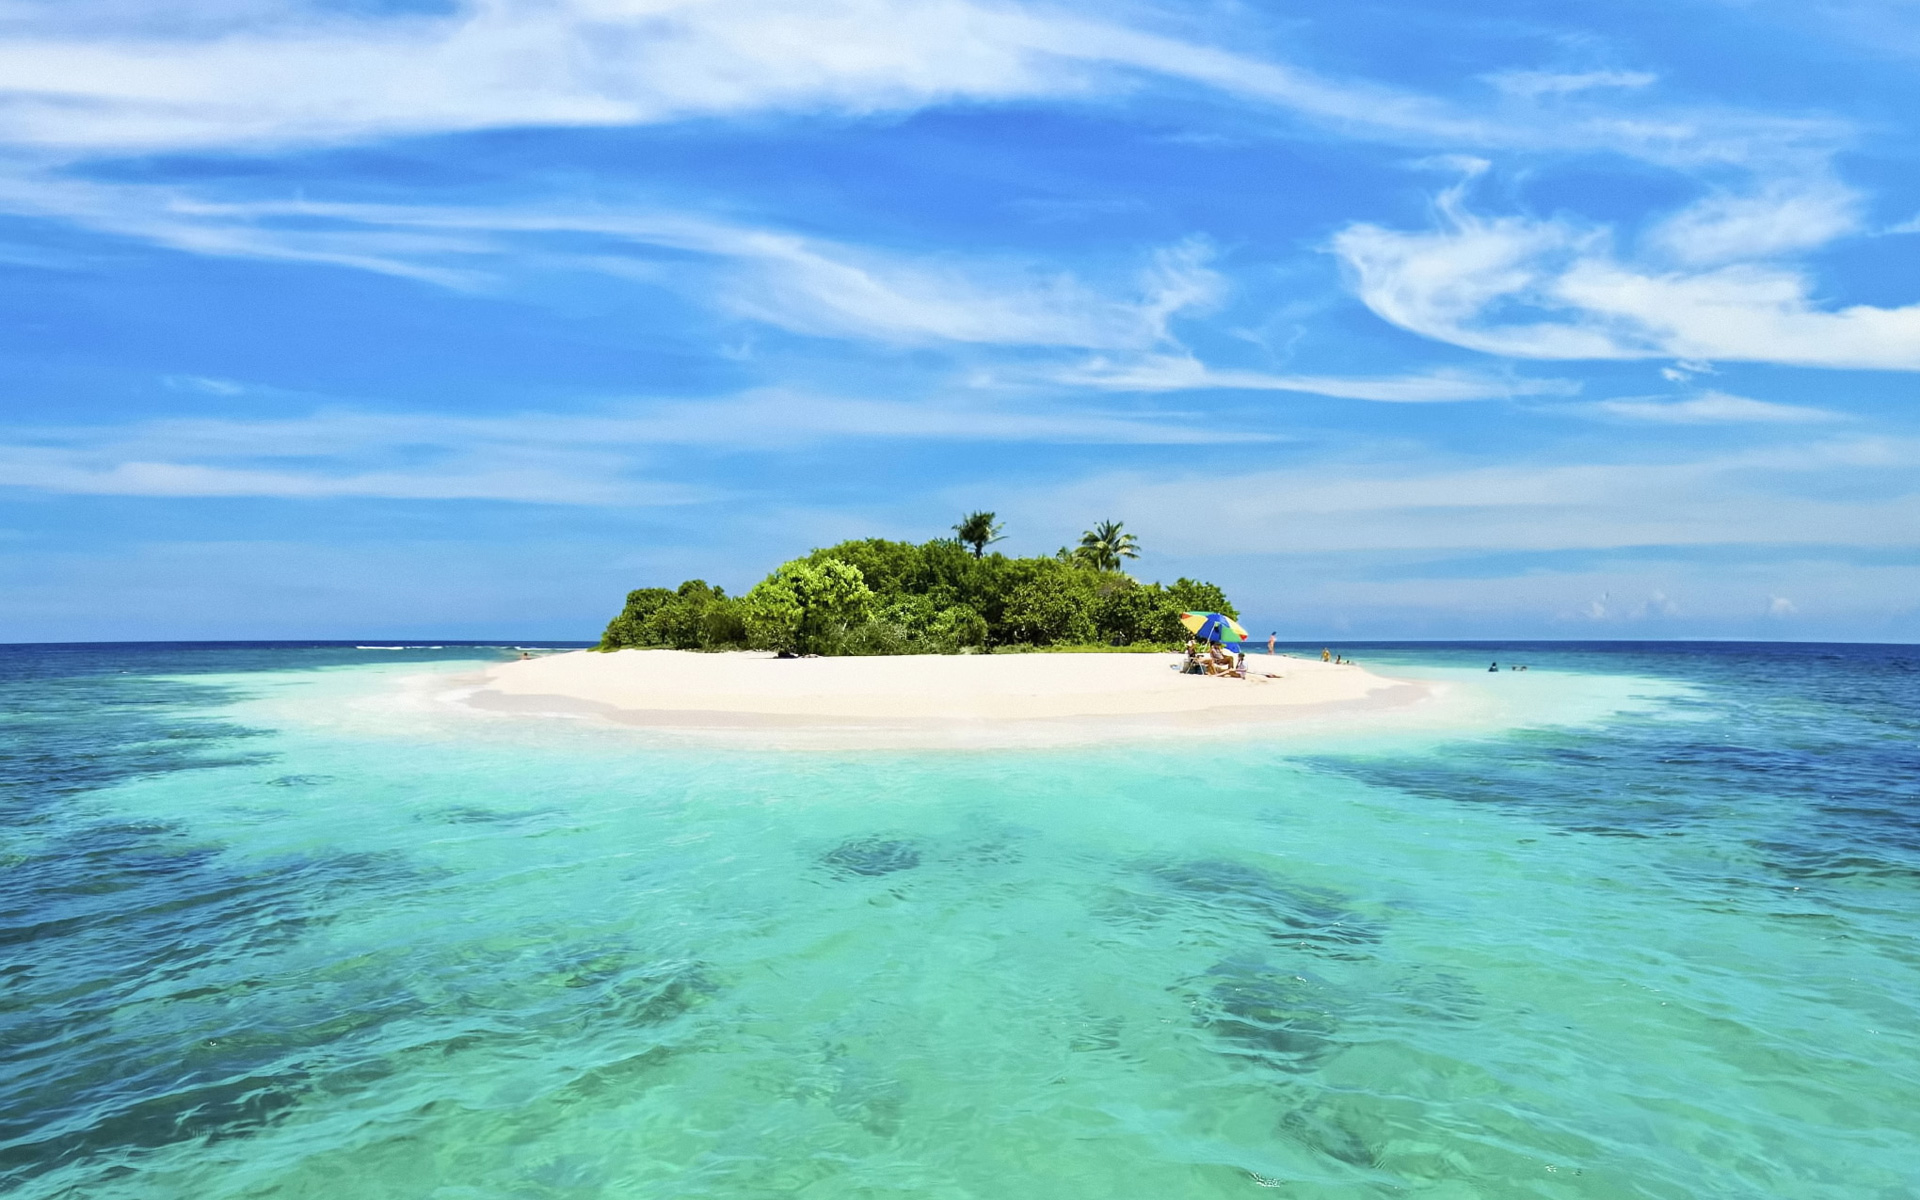 Sandy island in the middle of the ocean wallpaper   Beach Wallpapers 1920x1200